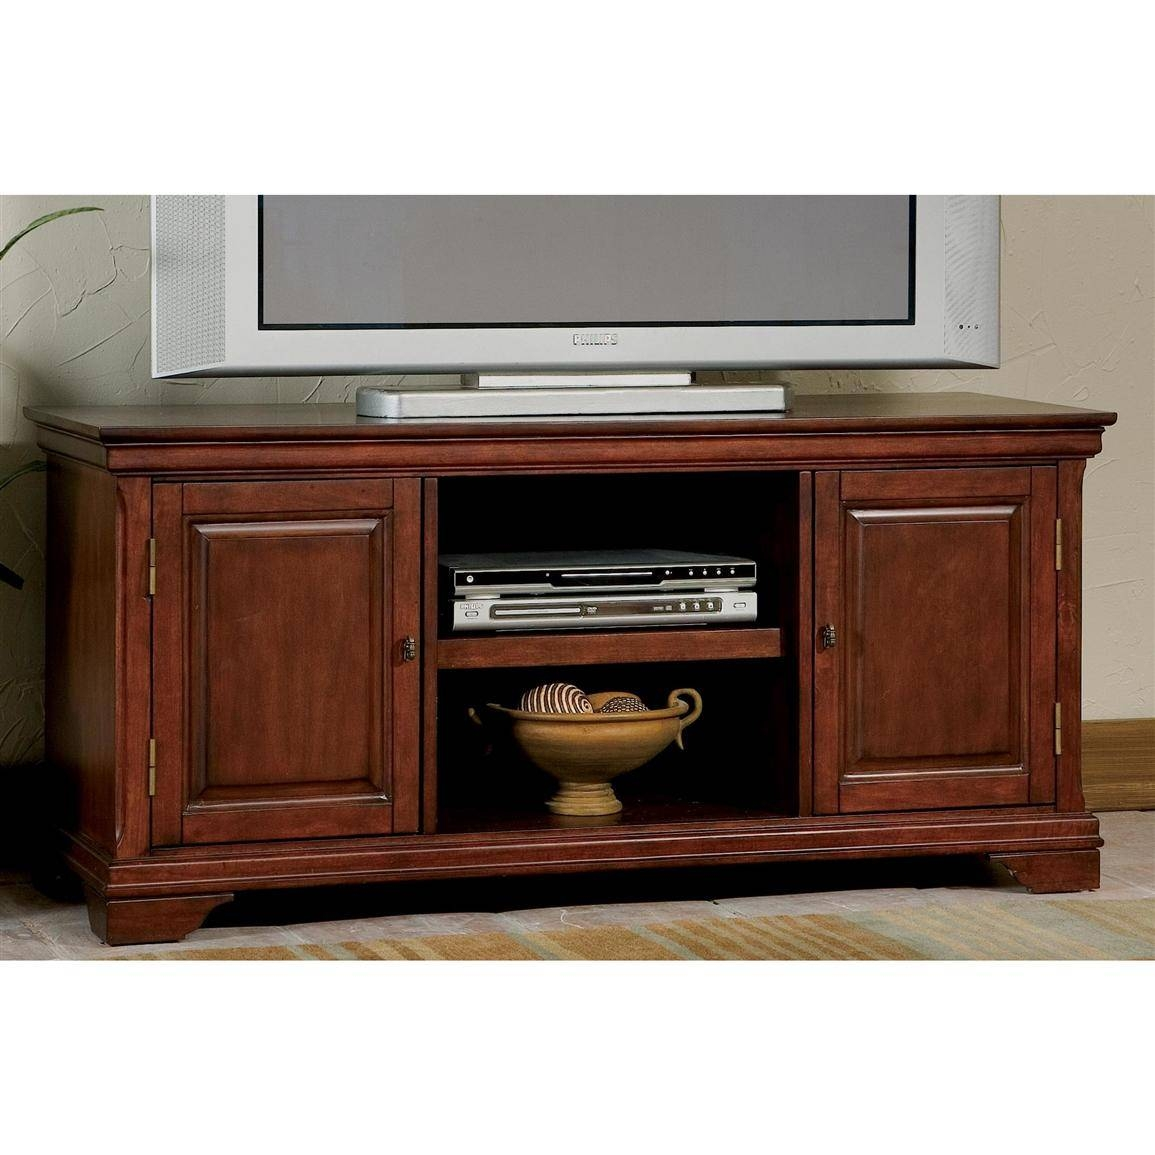 Home Styles™ Lafayette Tv Stand, Cherry - 172195, Entertainment with regard to Cherry Tv Stands (Image 9 of 15)